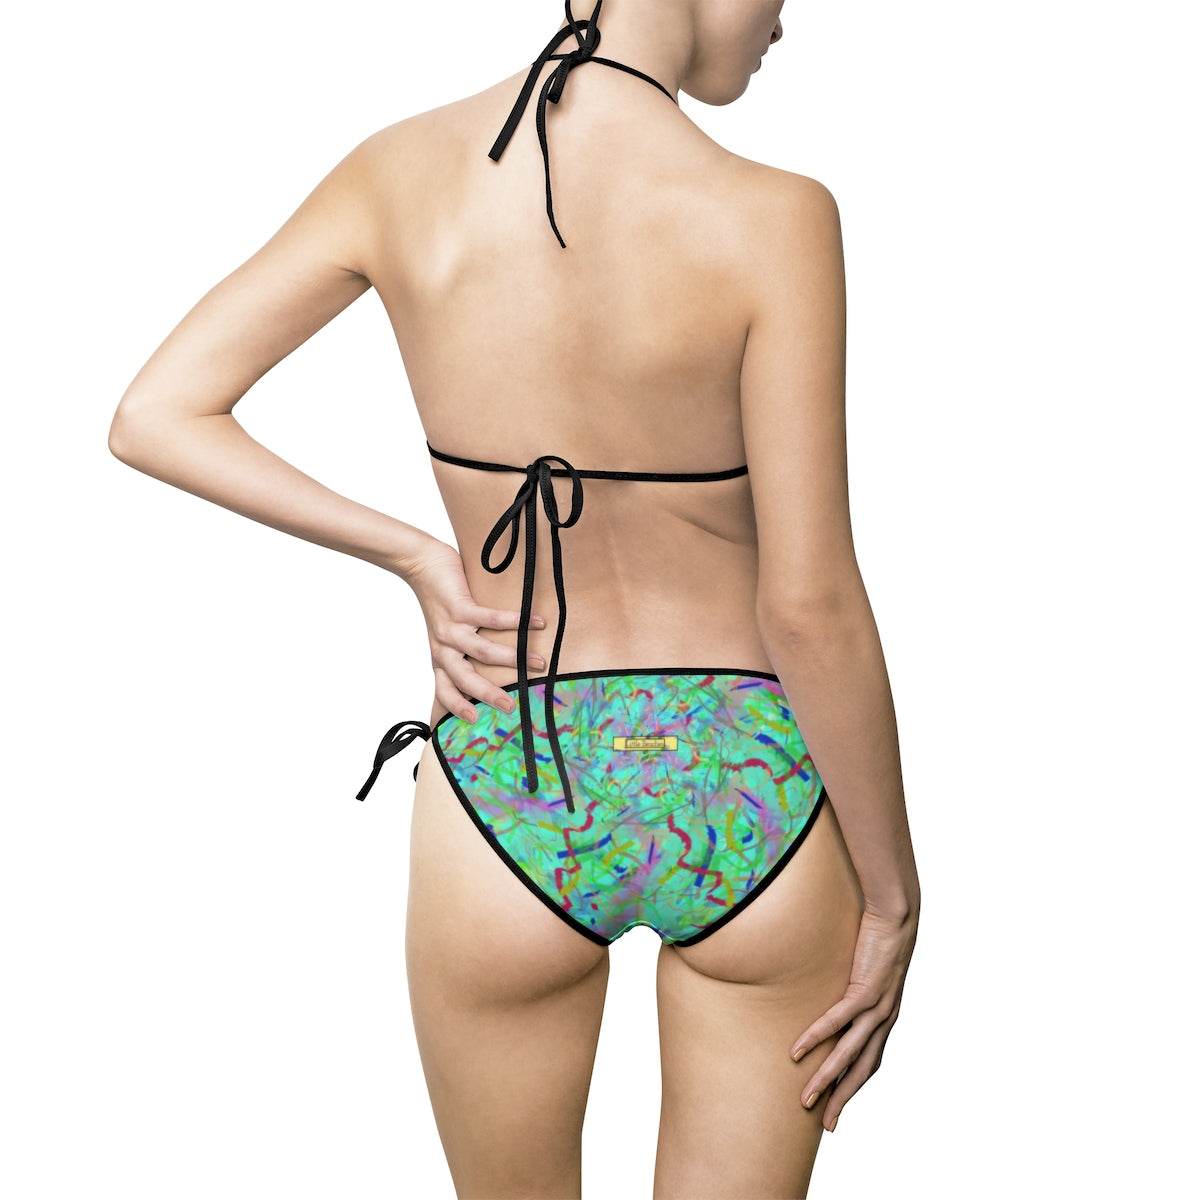 Women's Bikini Swimsuit Swirl - Little Beaches